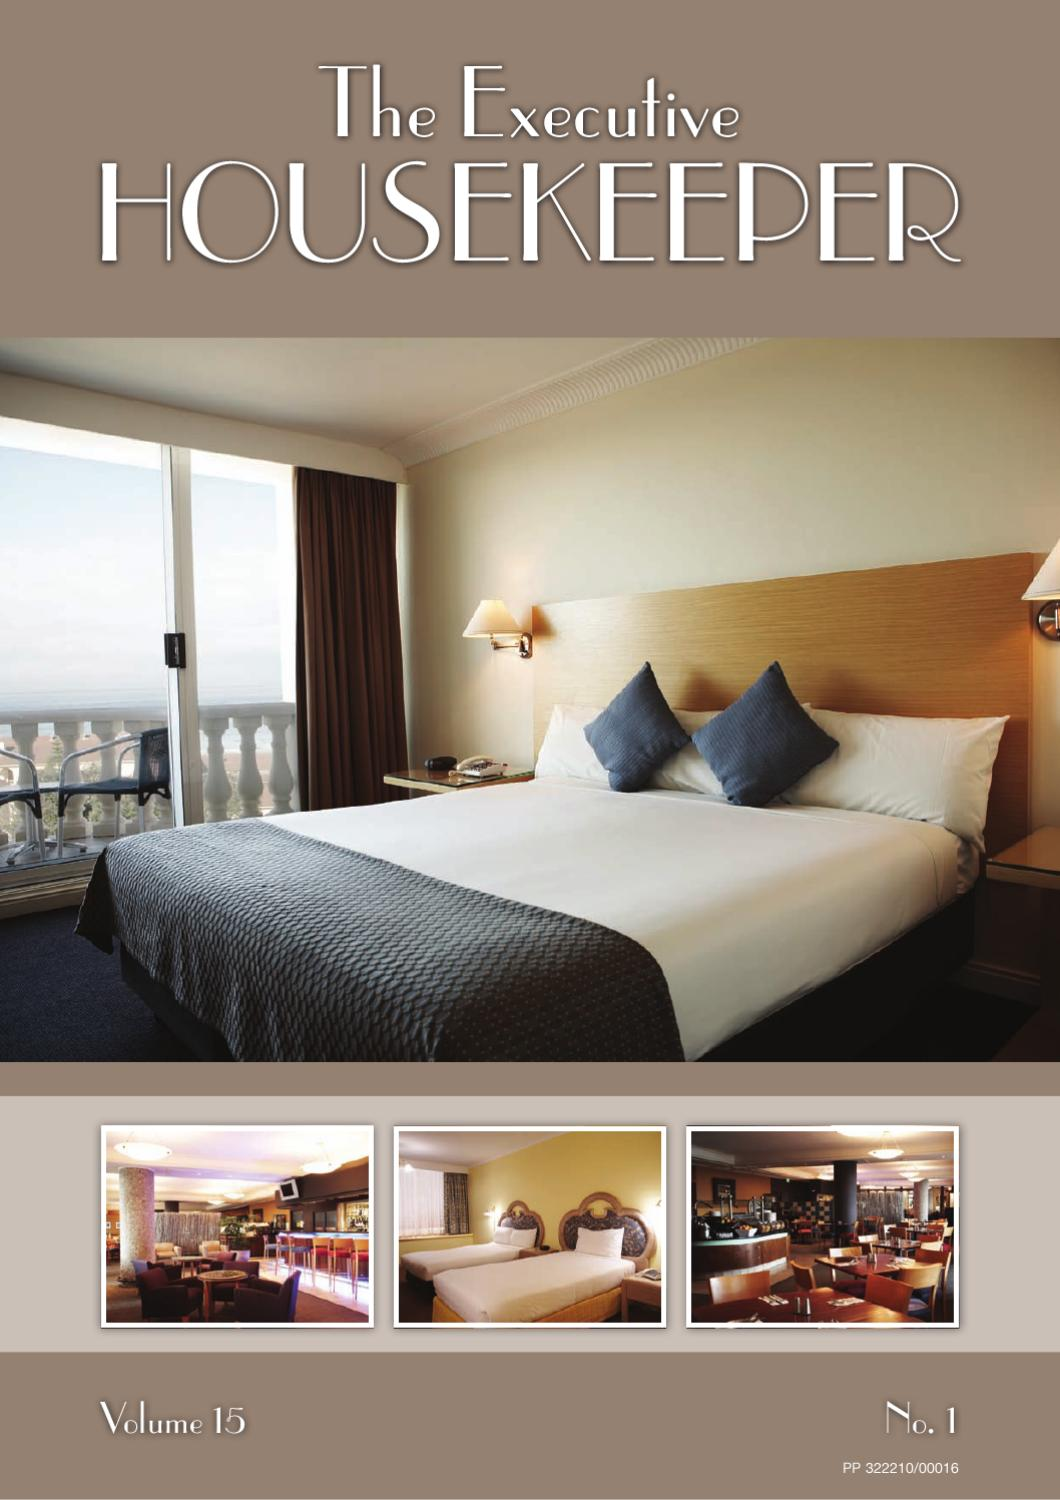 executive housekeeper volume 18 number 3 by adbourne publishing executive housekeeper volume 18 number 3 by adbourne publishing issuu